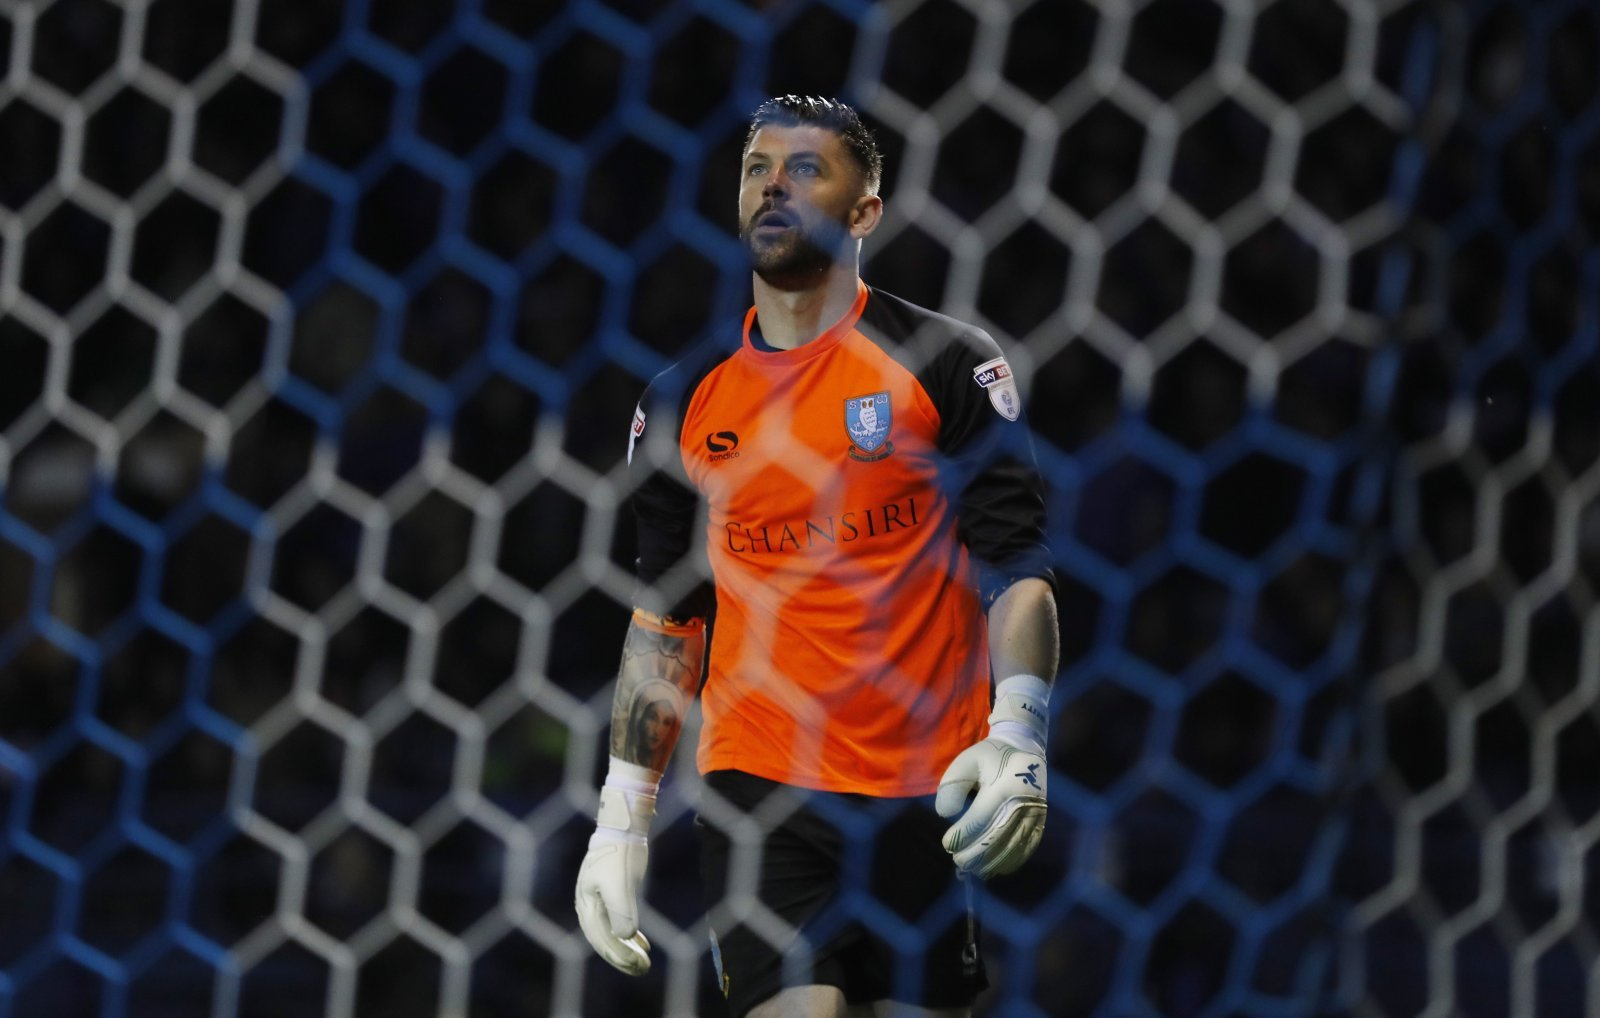 Sheffield Wednesday: Keiren Westwood earns Republic of Ireland recall